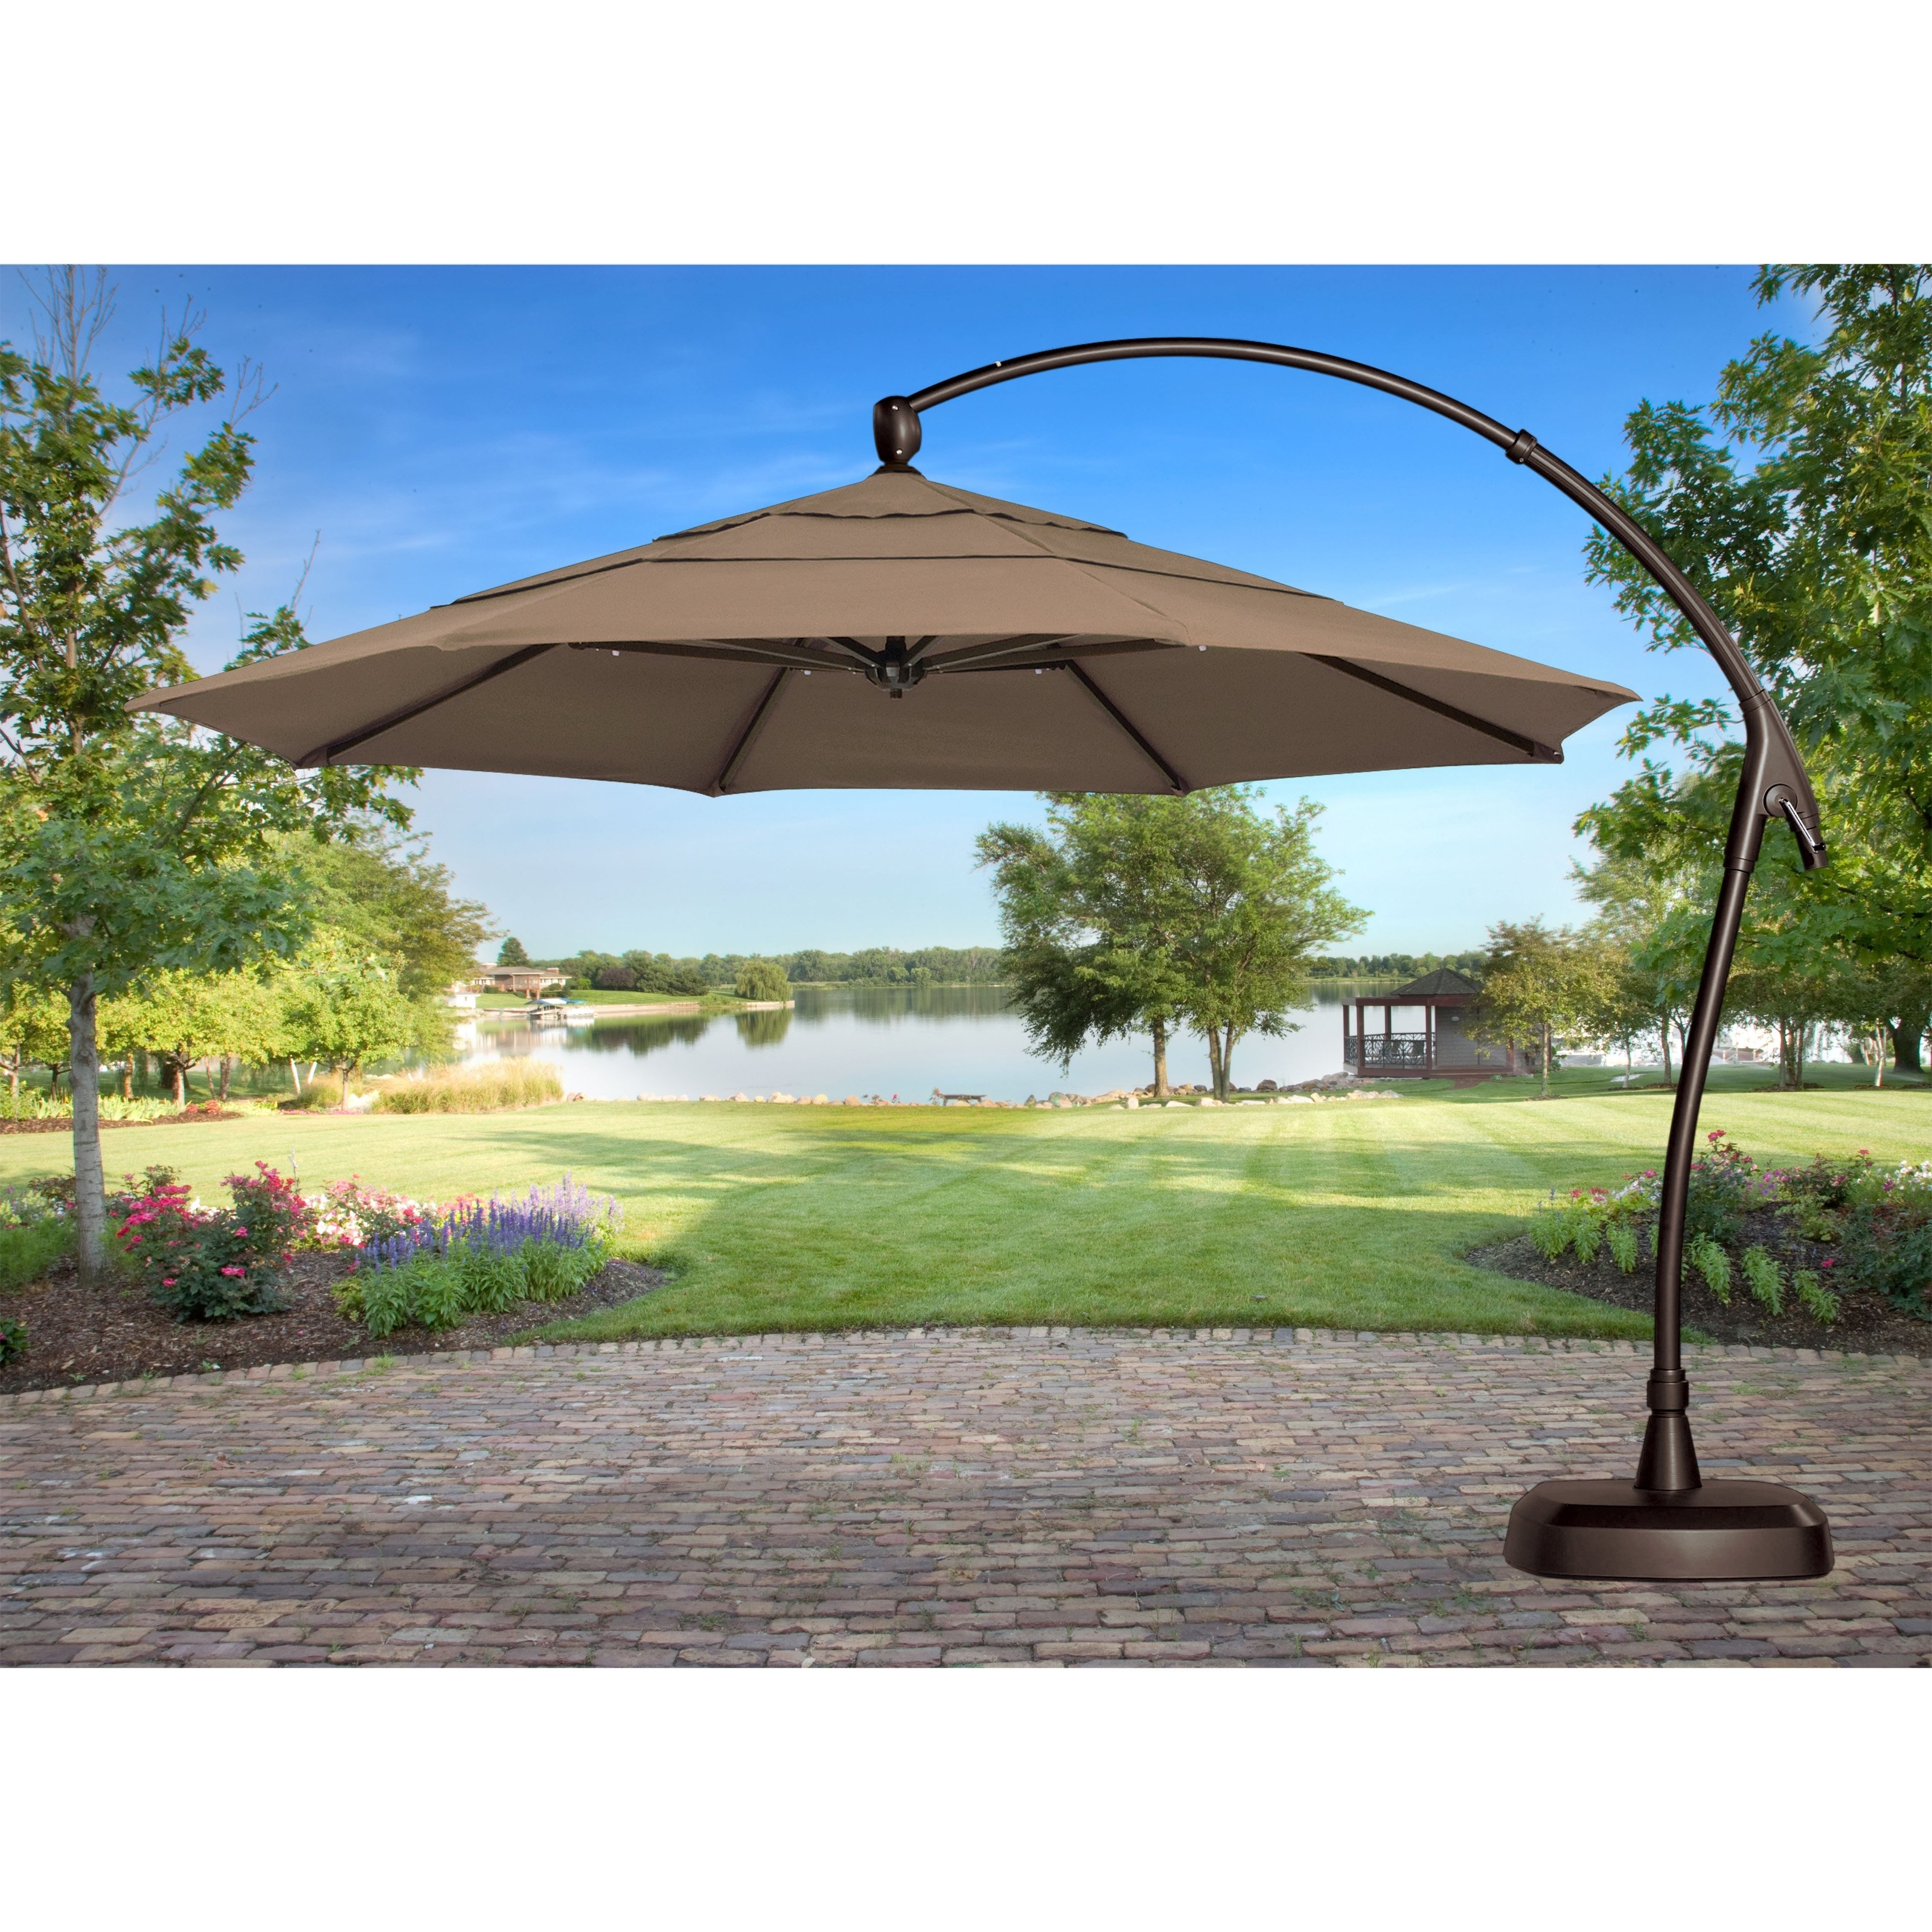 Most Current Sunbrella Patio Umbrellas At Walmart Intended For Treasure Garden 11 Ft (View 6 of 20)